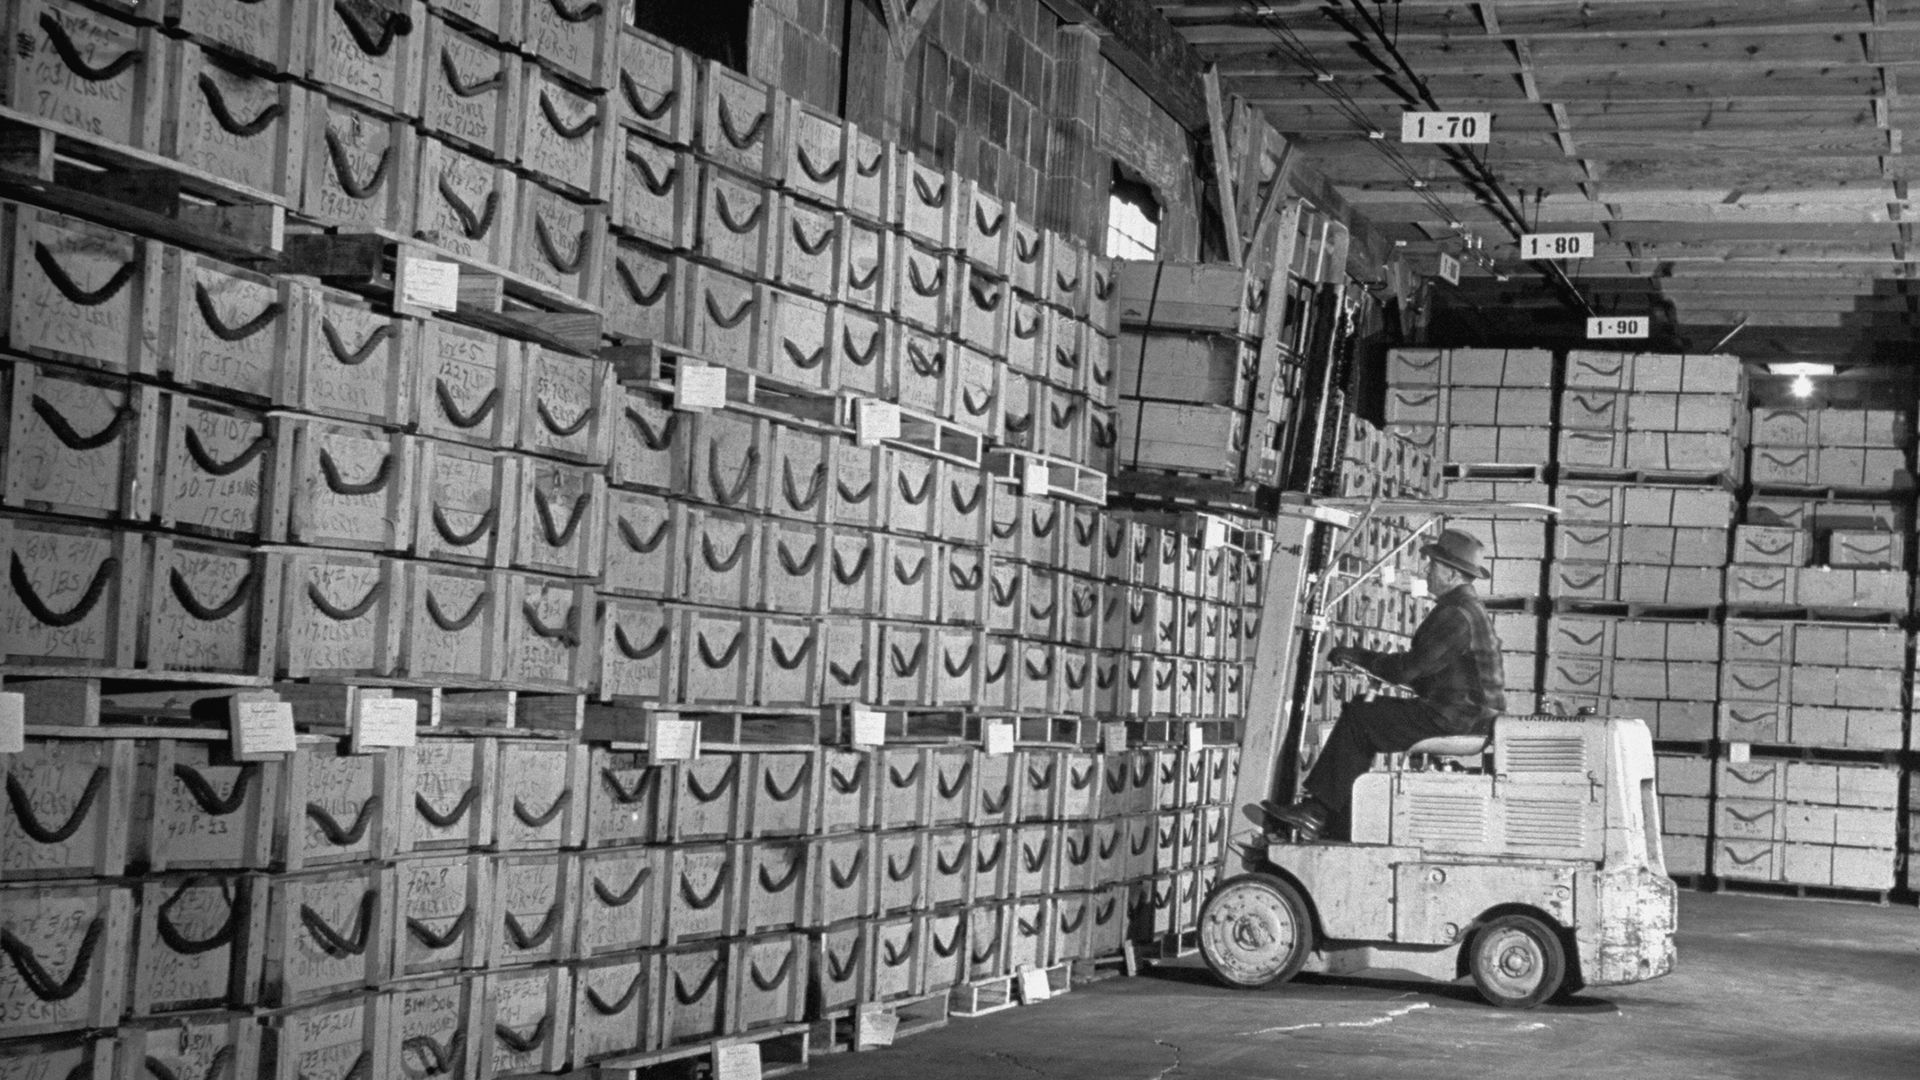 A forklift operator lifts crates full of quartz crystals in this photo from 1948.